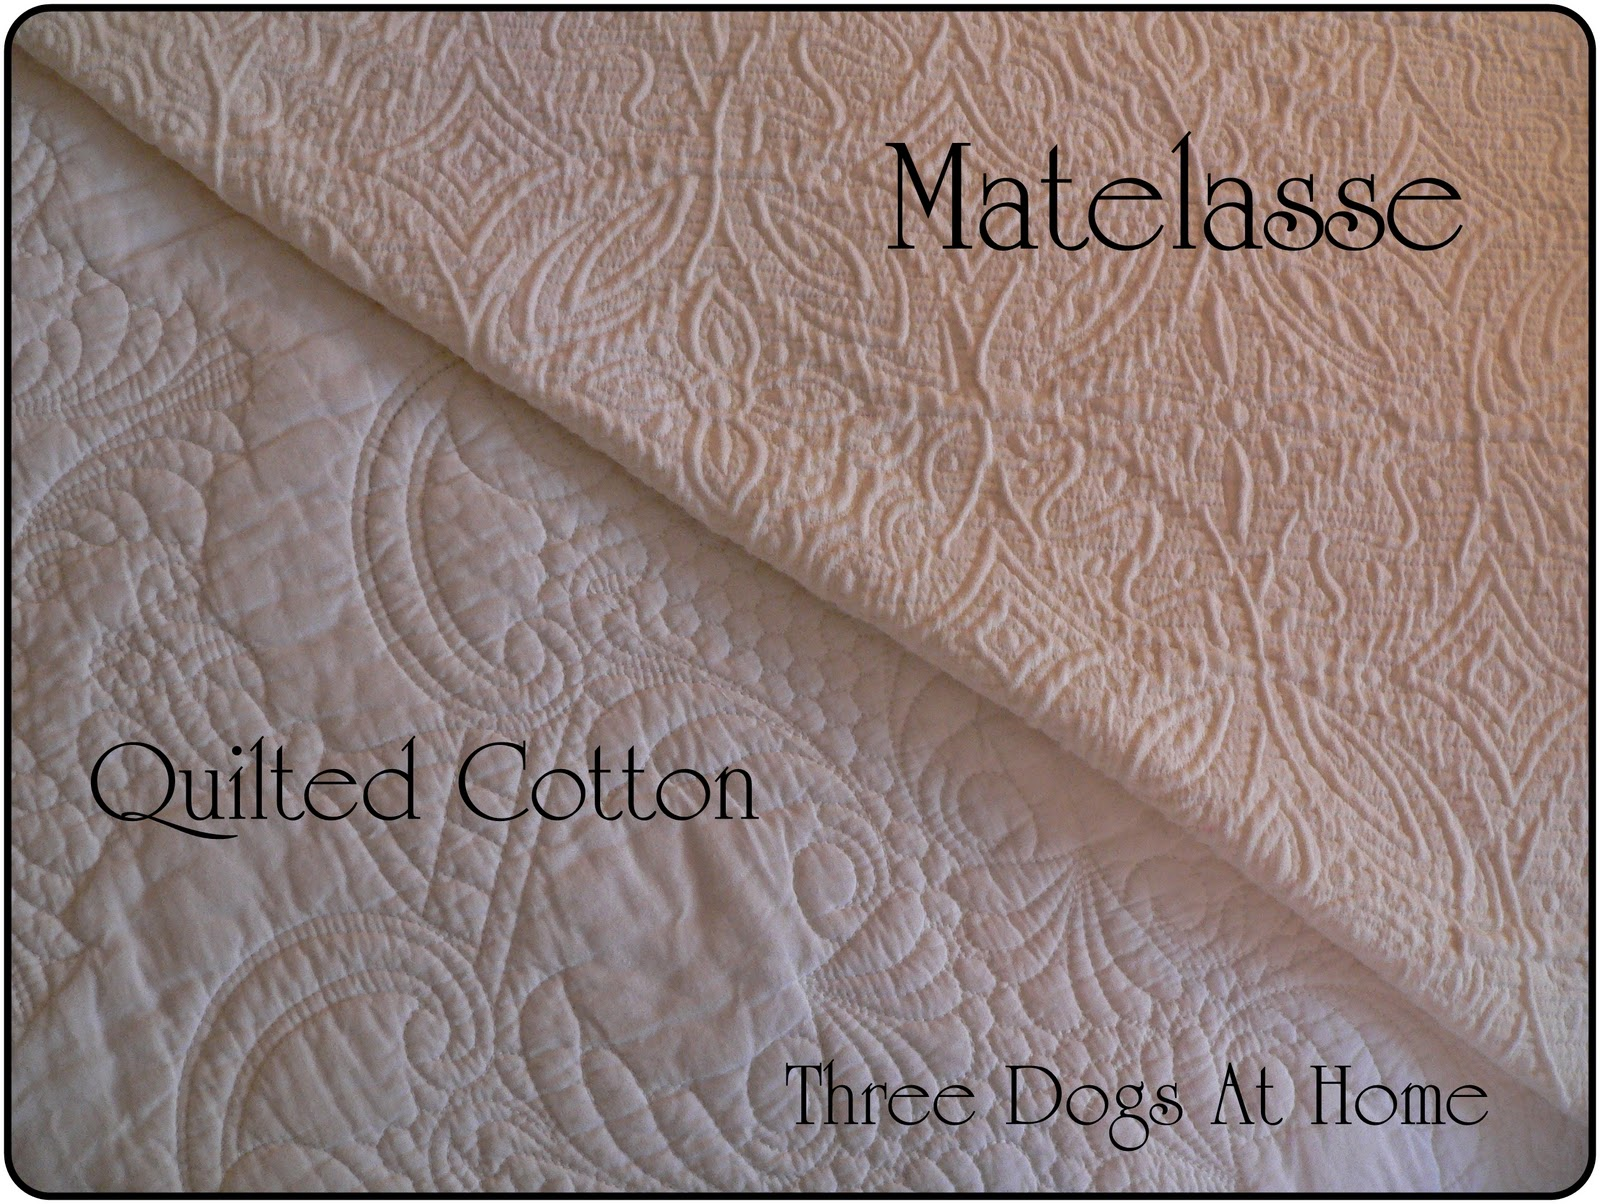 Mattelesse The Almost Dog Proof Bedspread Three Dogs